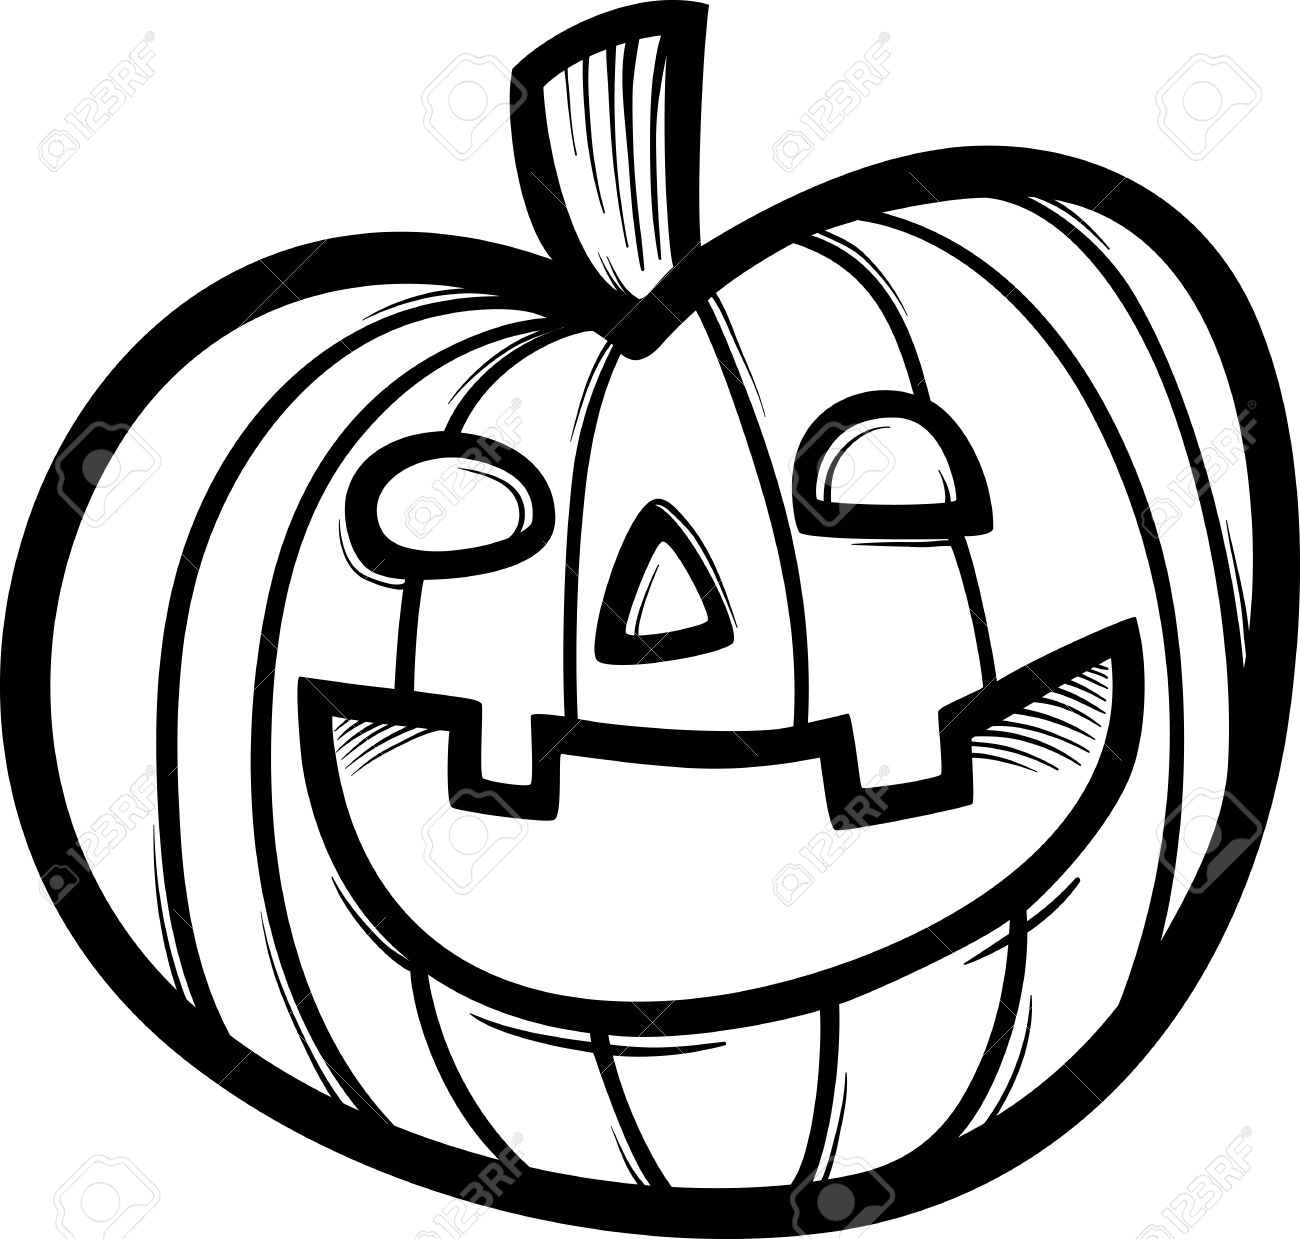 Black and White Cartoon Illustration of Spooky Halloween Pumpkin...